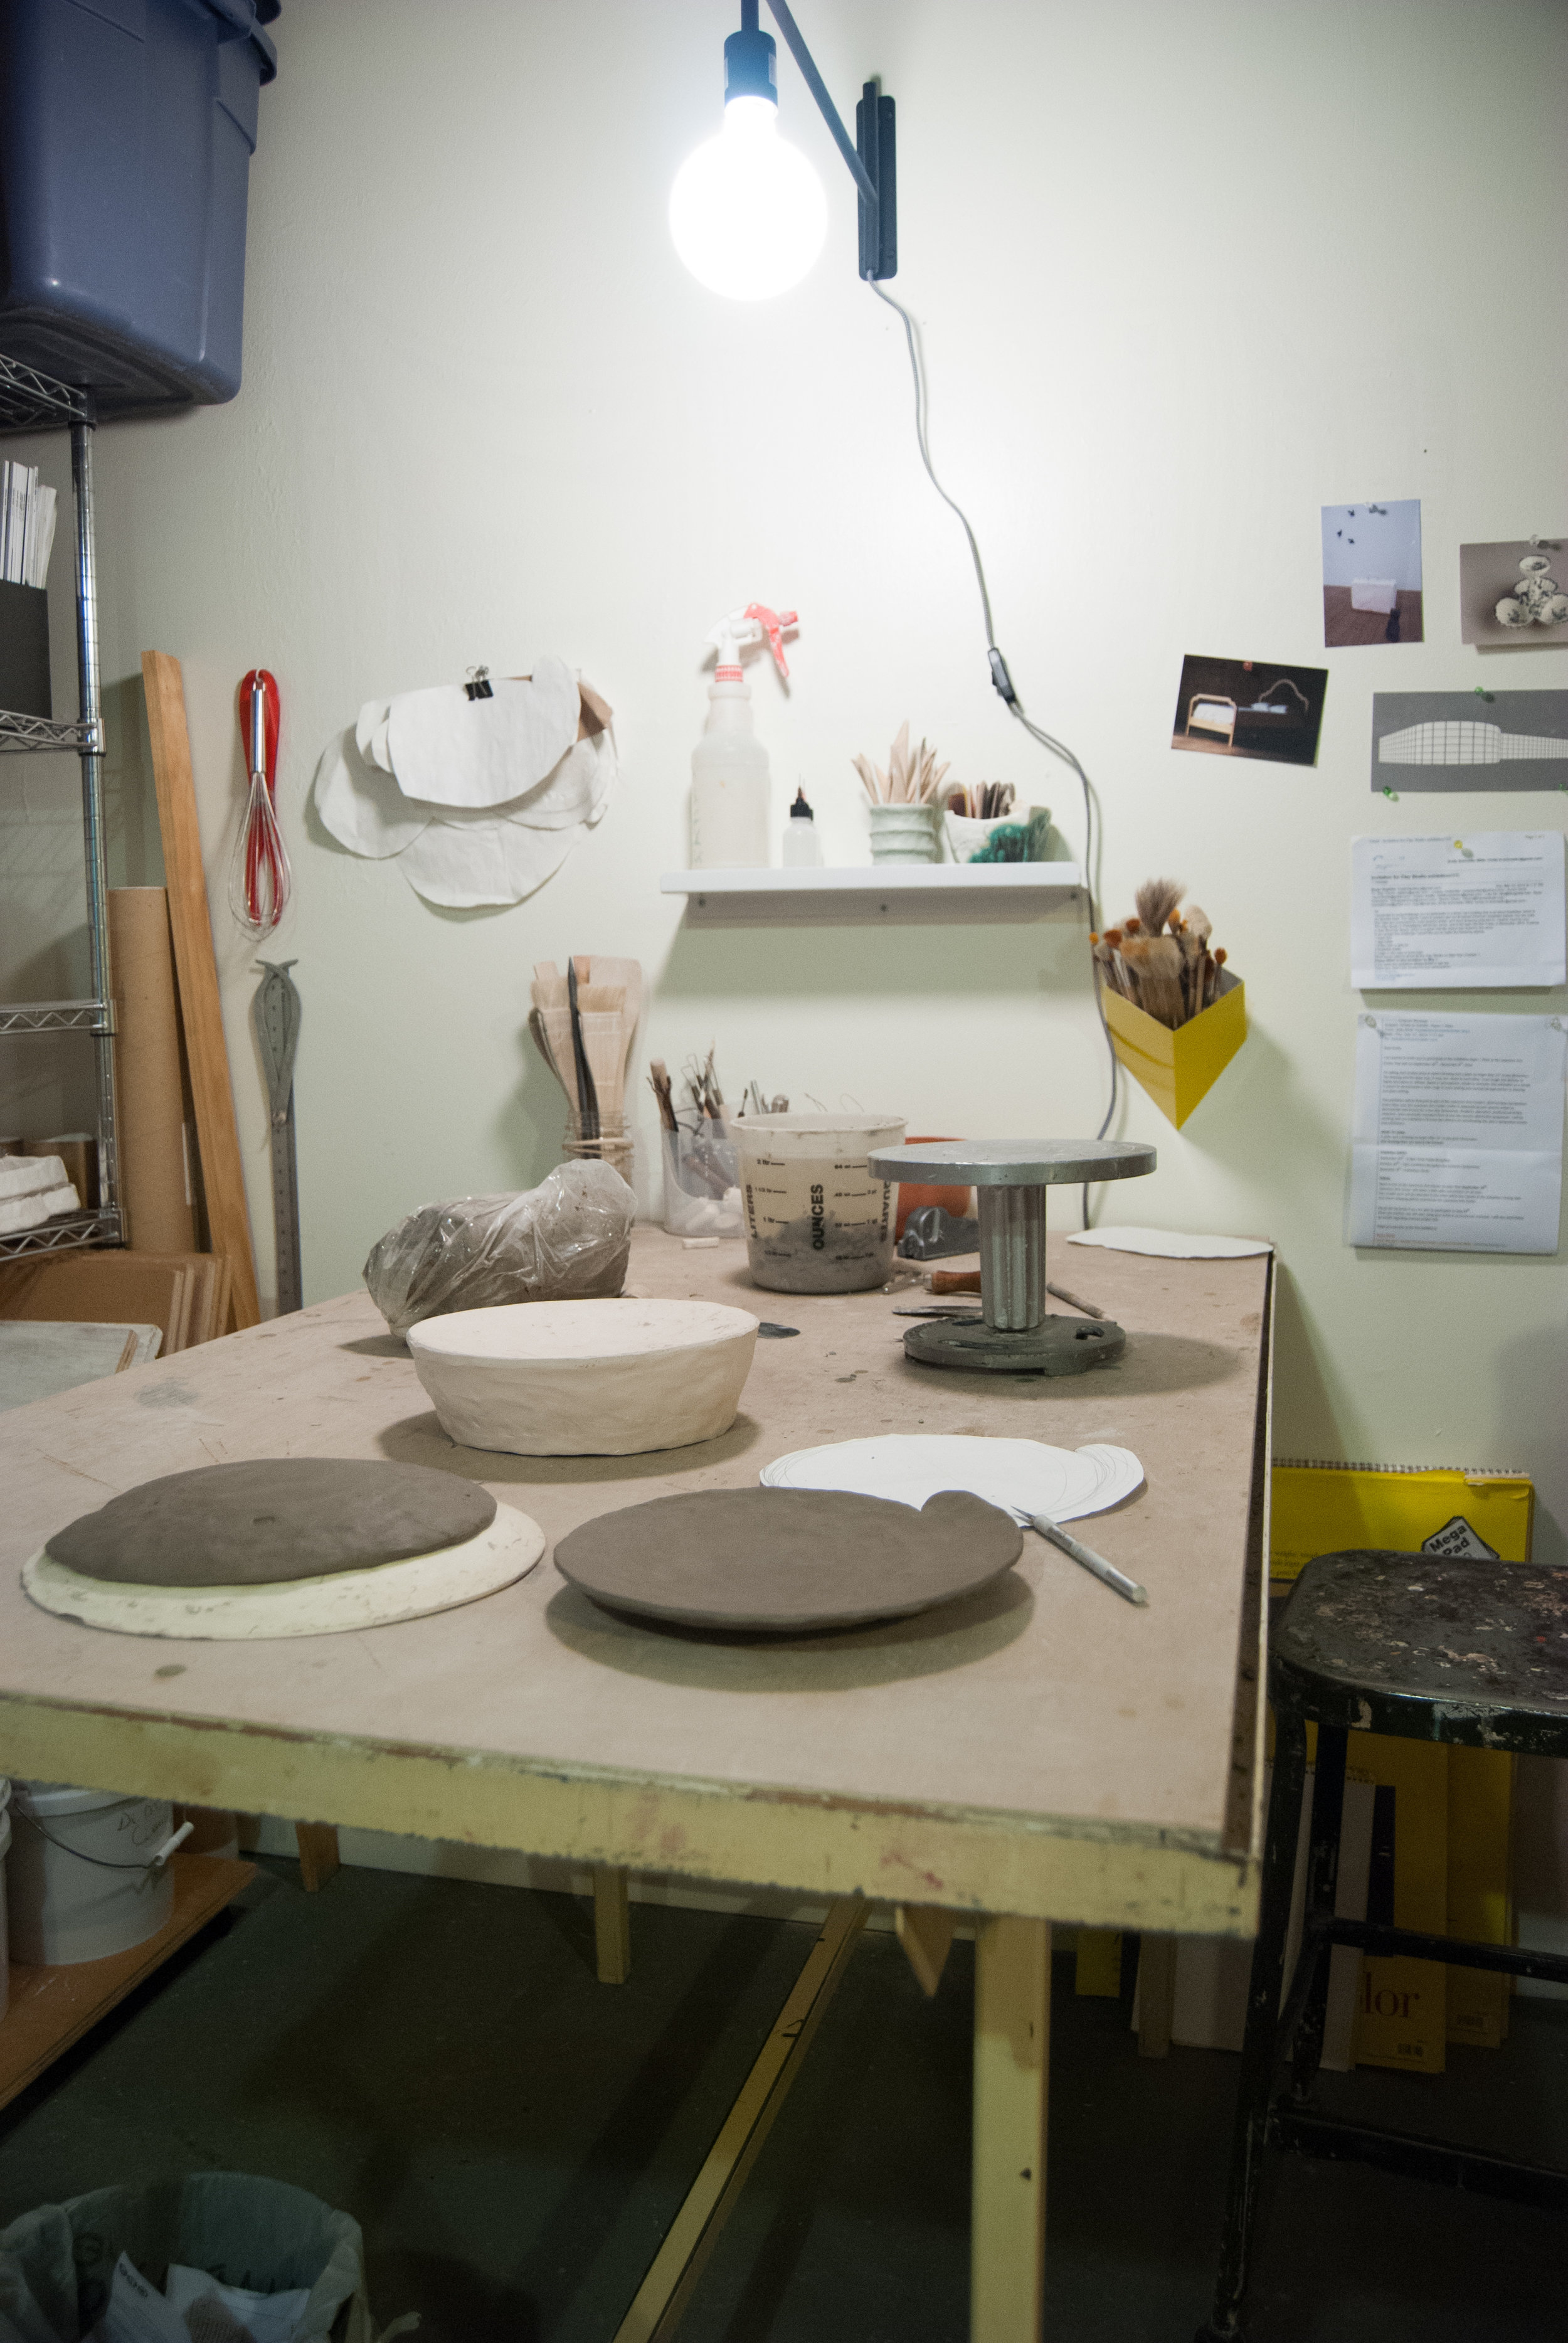 A view into my studio